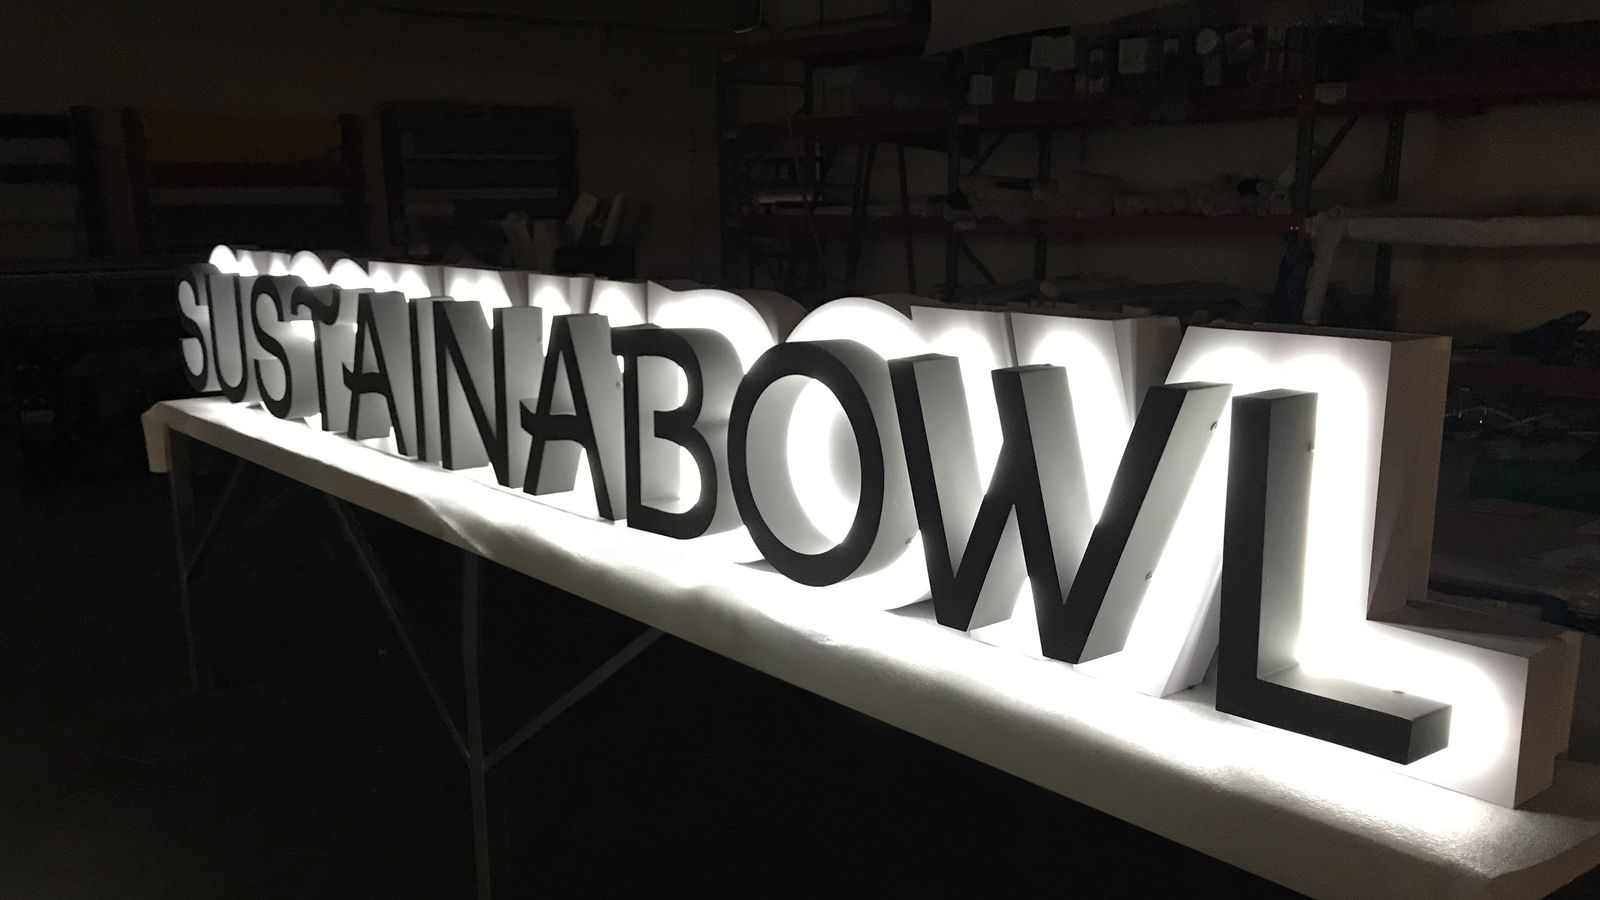 Backlit channel letters for Sustainabowl